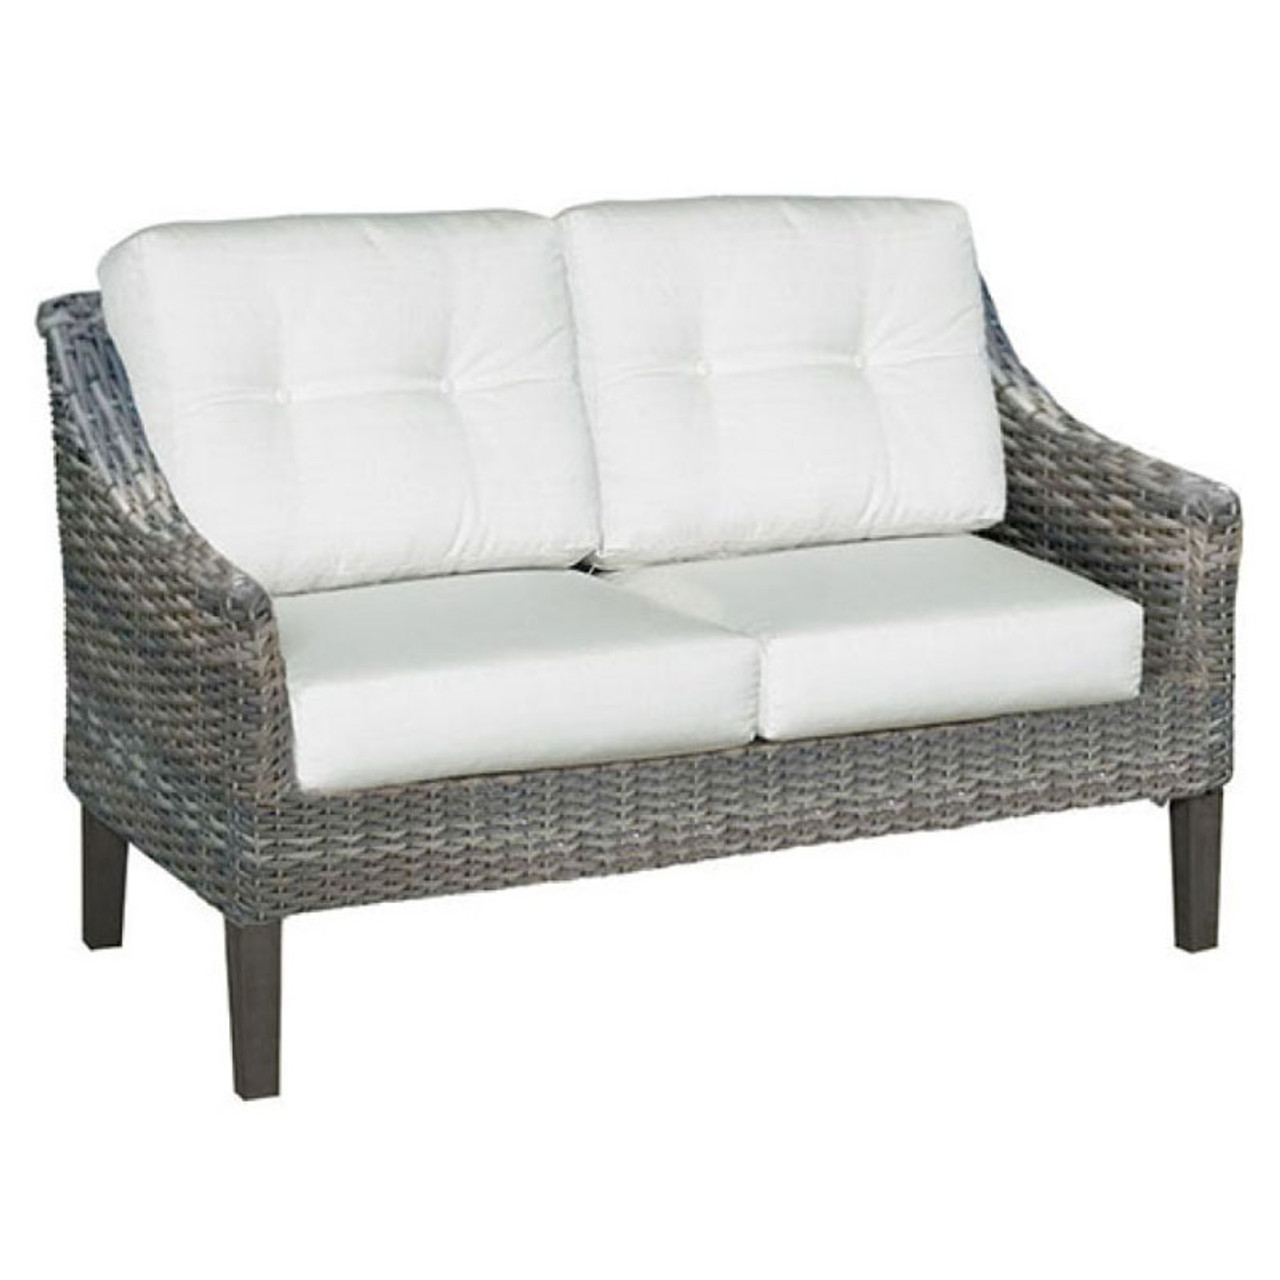 Replacement Cushions For Outdoor Loveseat